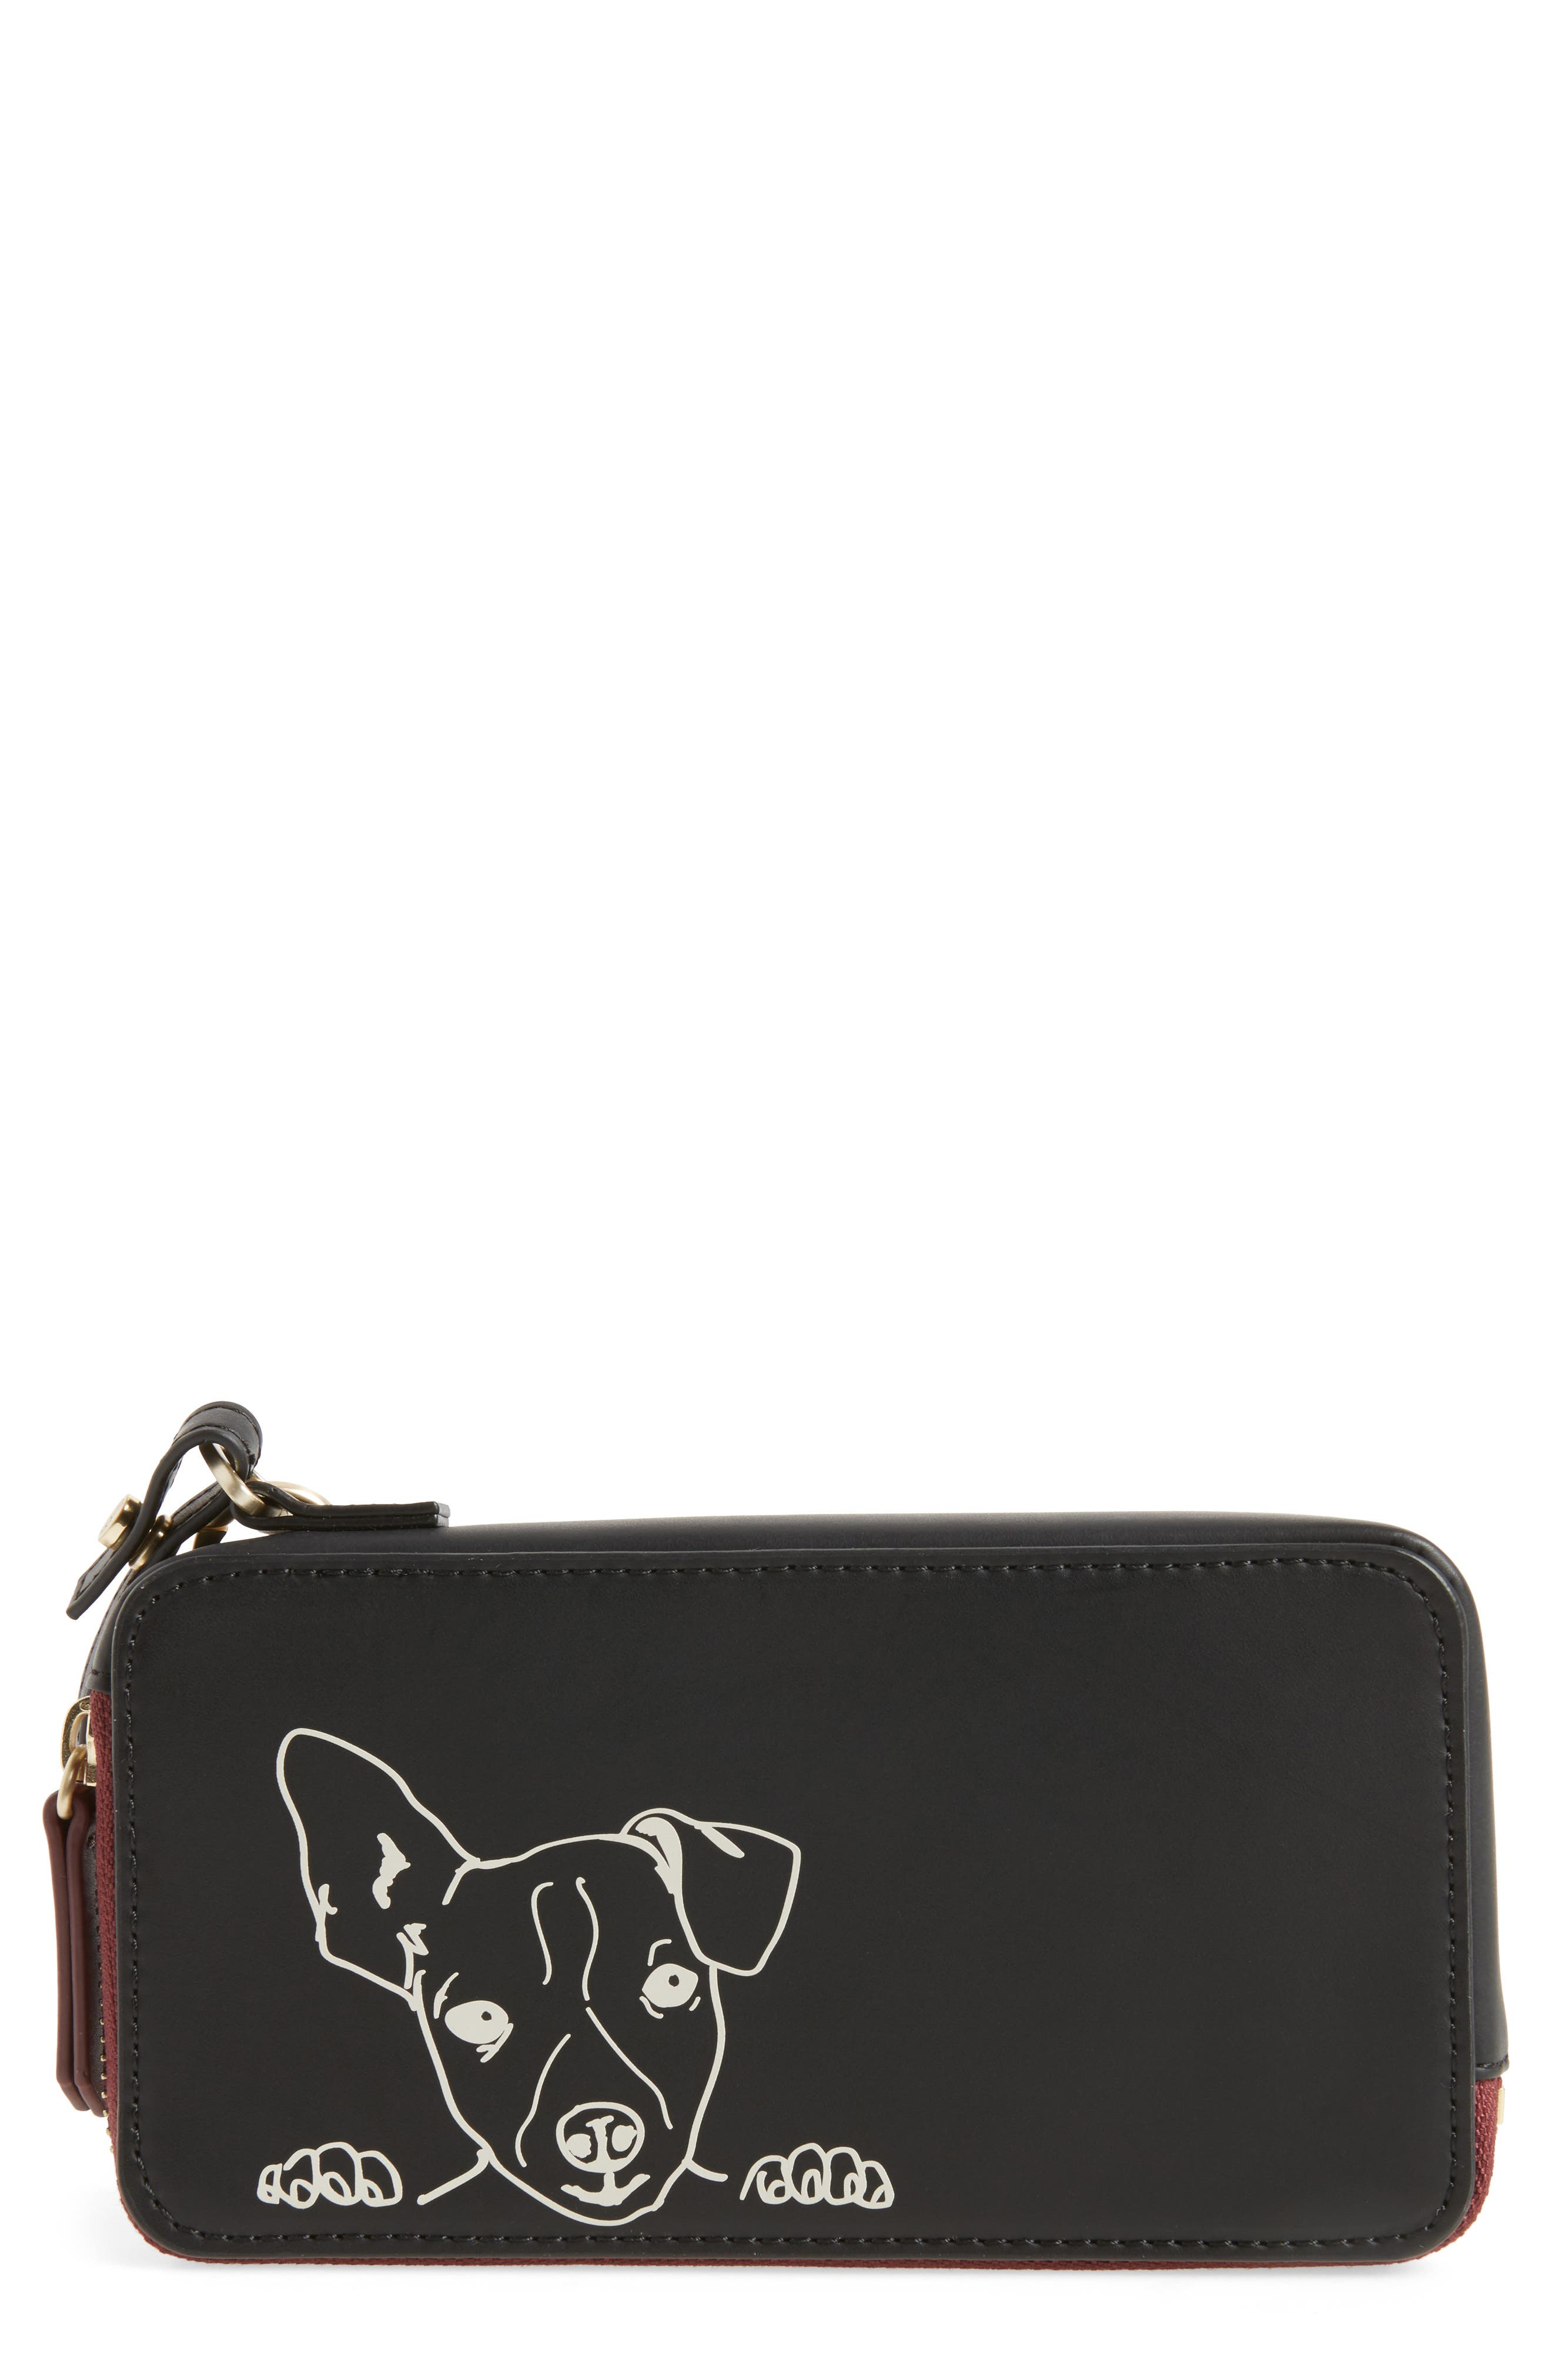 Brea Convertible Smartphone Leather Clutch,                             Main thumbnail 1, color,                             001